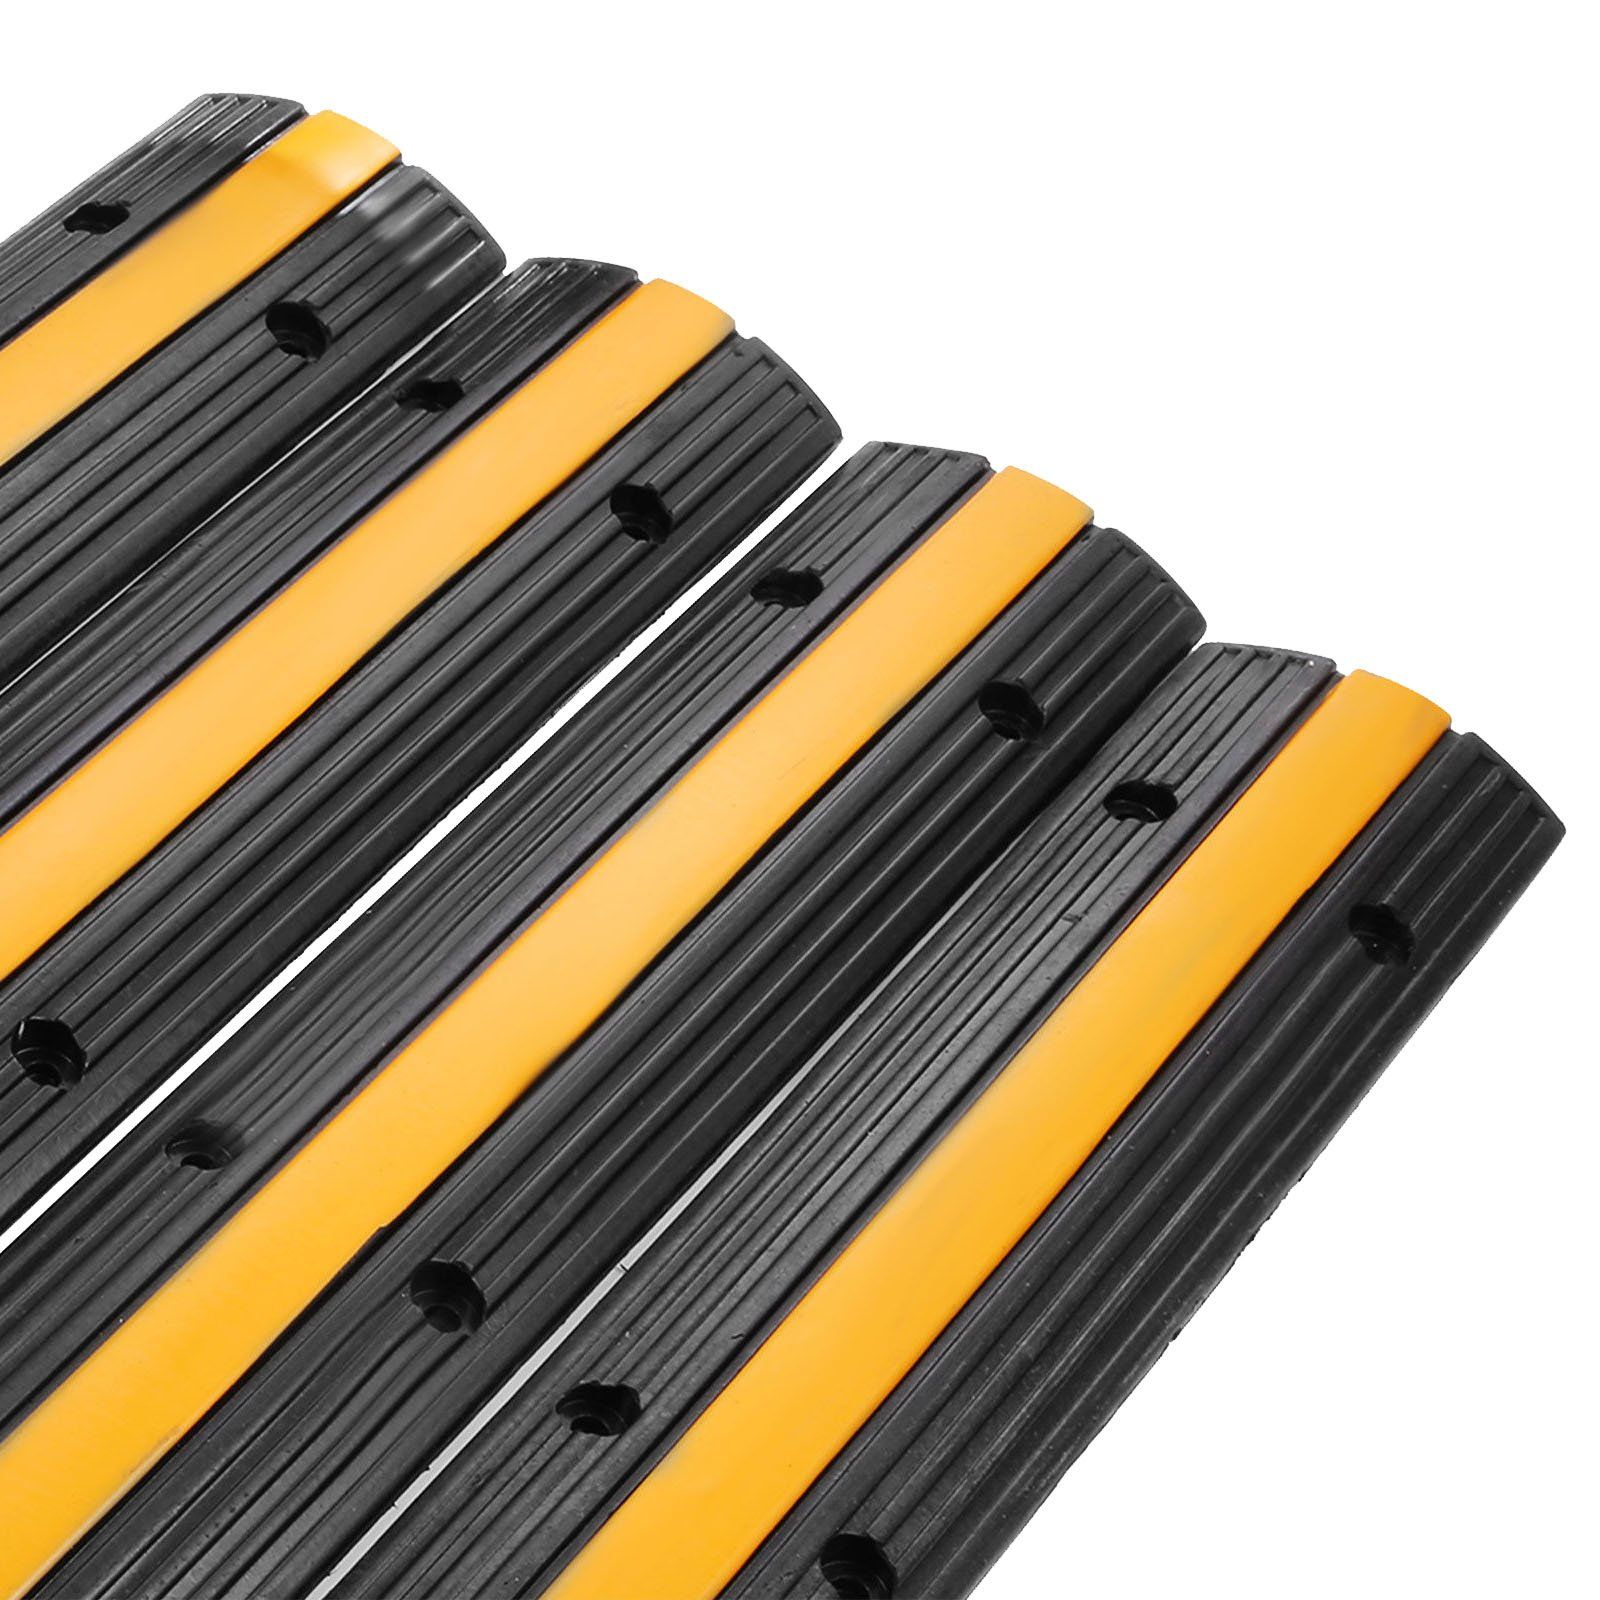 Shzond Extreme Rubber Single Channel Cable Protector Cable Ramps Protectors Cable Ramp Cover 4 Pack Cable Prote Cable Protector Electrical Equipment Speed Bump